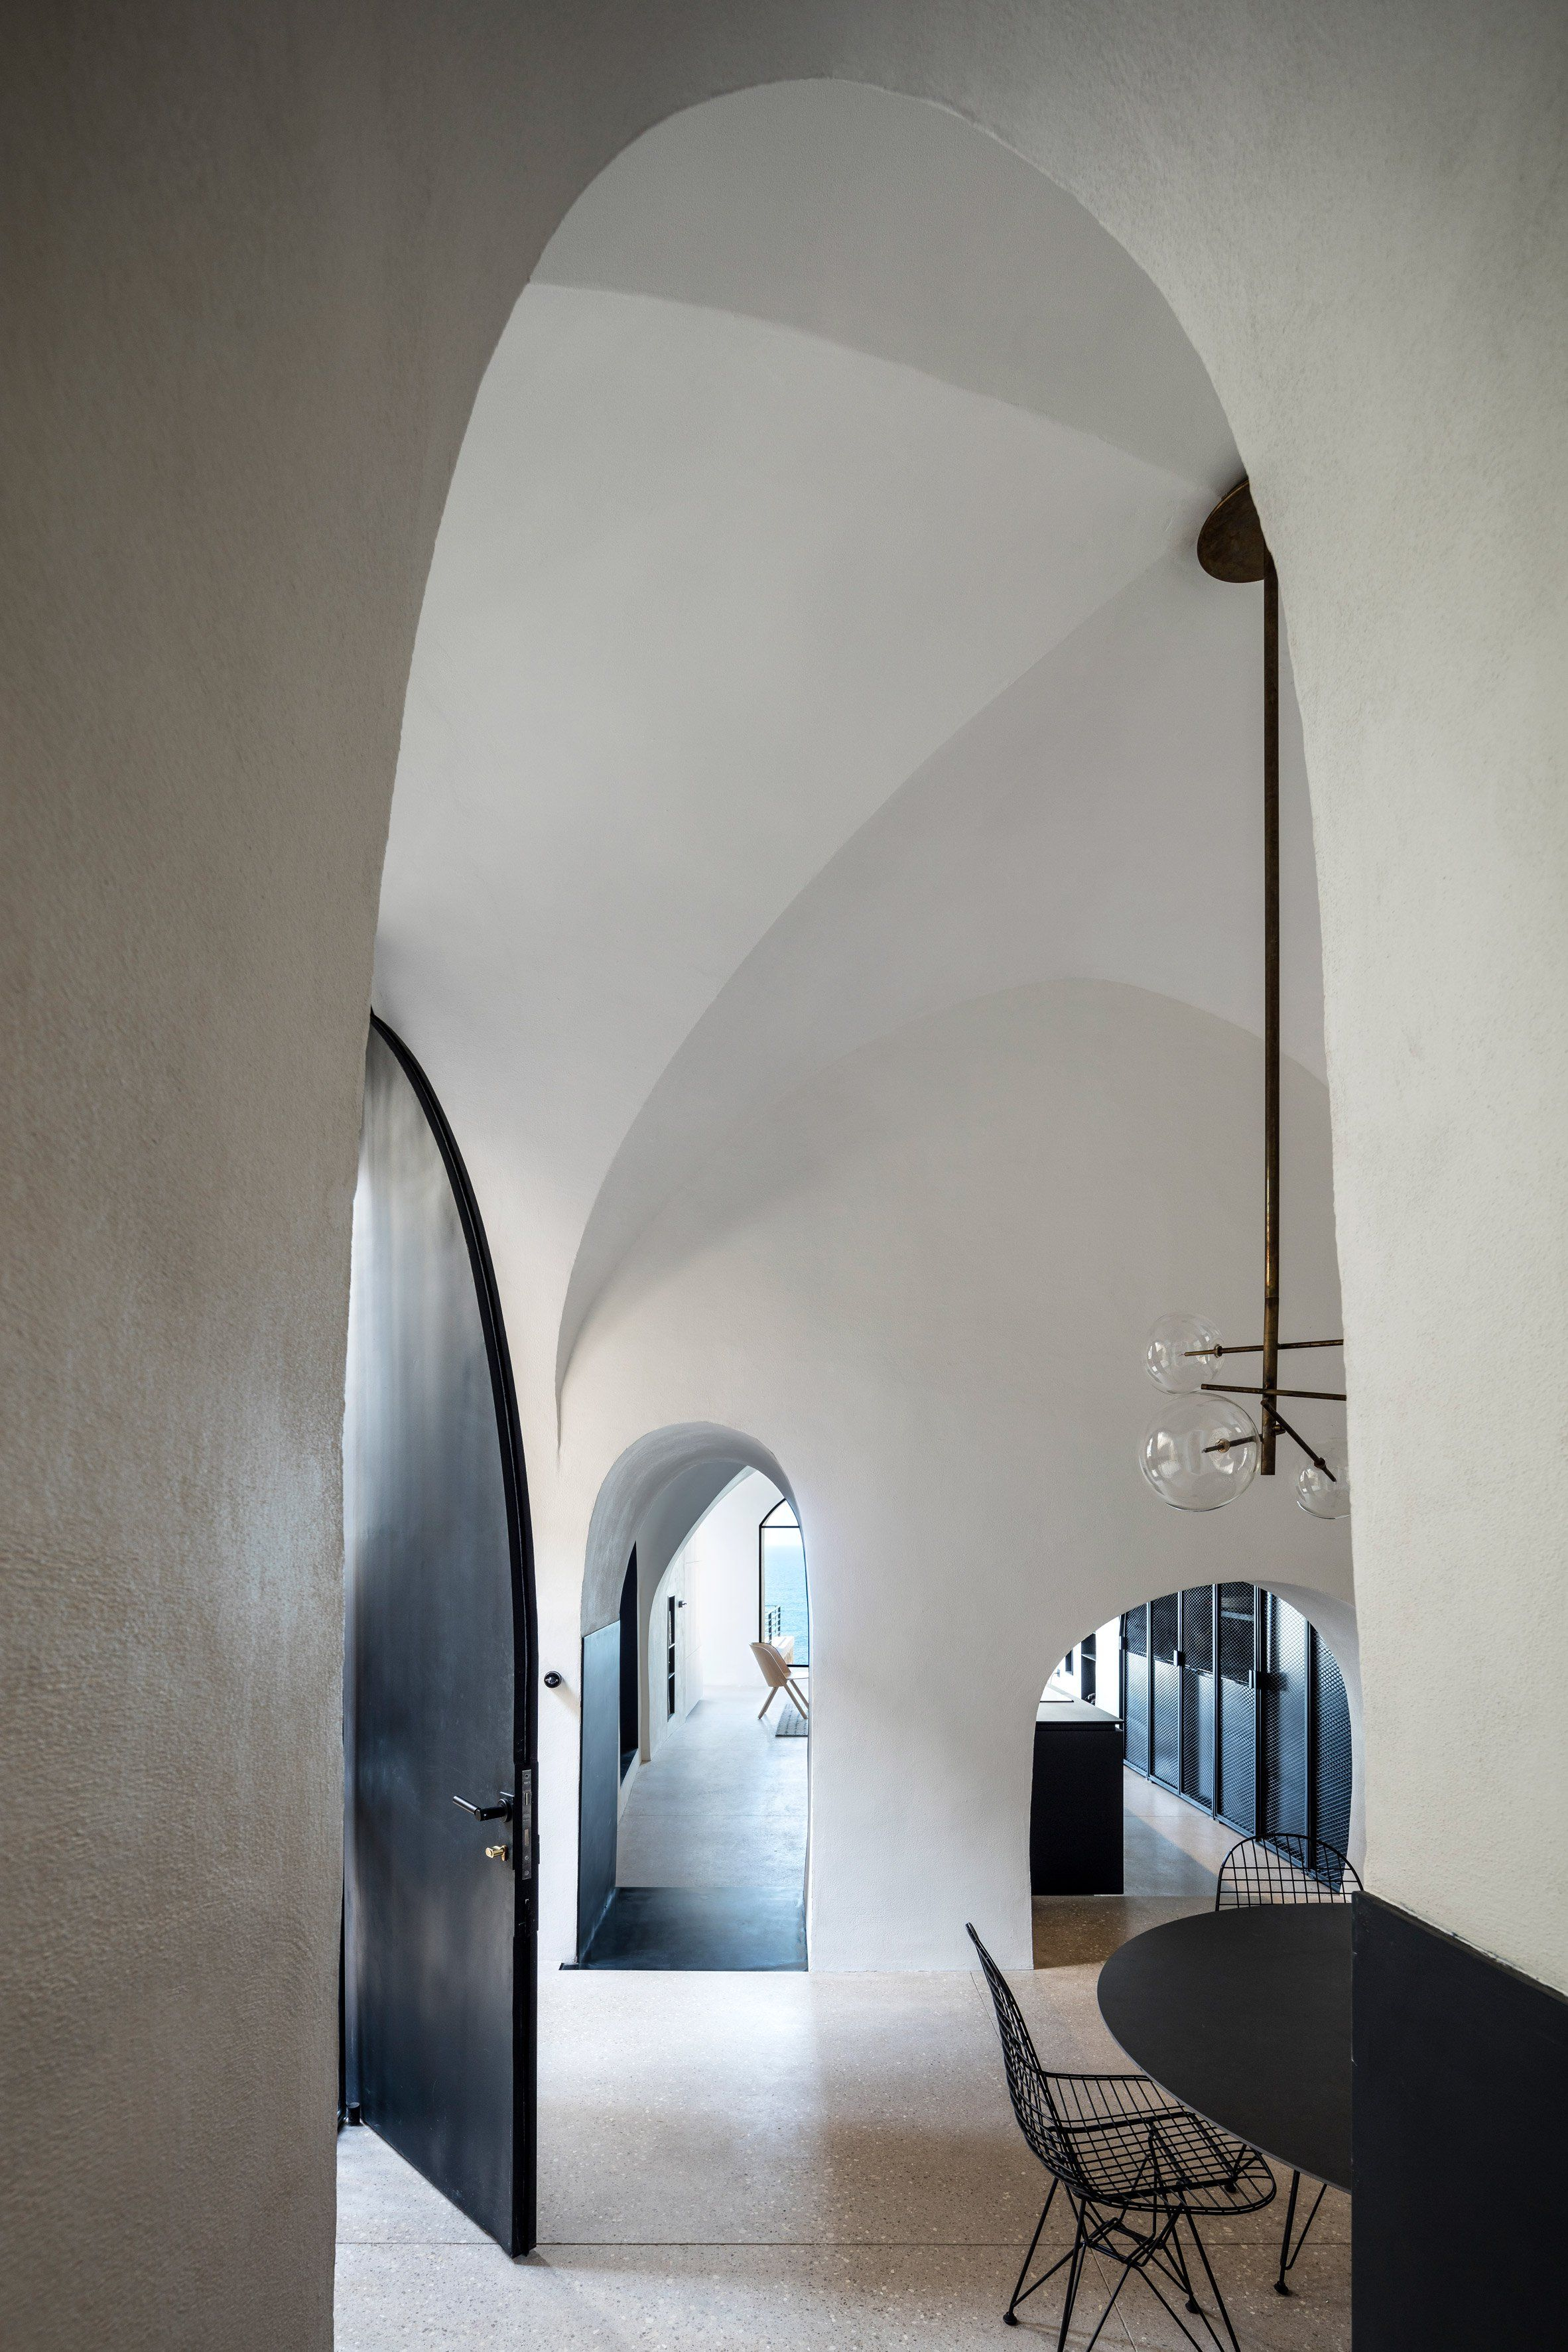 Relieving Adding Arched Windows Pitsou Kedem Has Updated An Apartment Ancient Port Ancient Port Jaffa Door Frames To Echo Vaulted Ceiling Pitsou Kedem Has Updated An Apartment